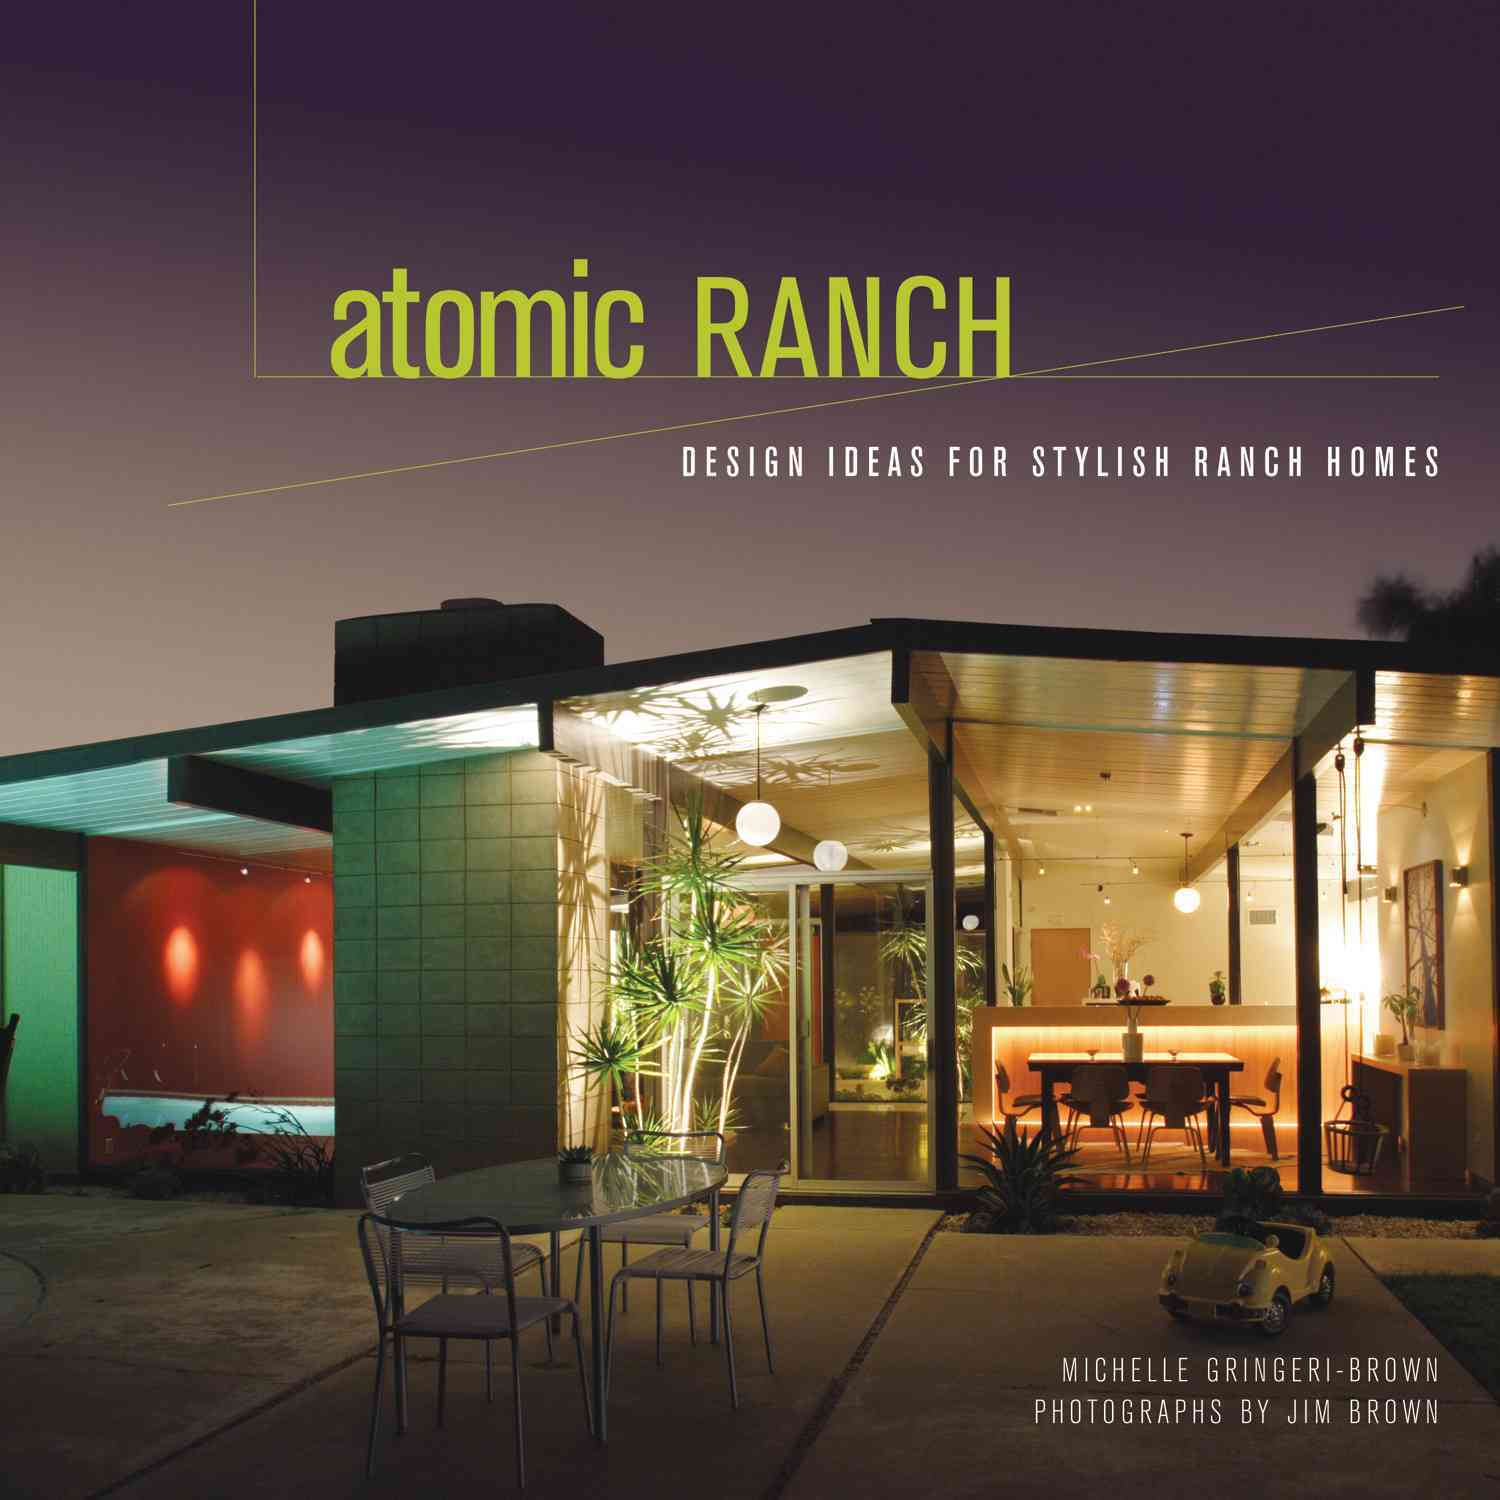 Atomic Ranch: Design Ideas for Stylish Ranch Homes (Hardcover)